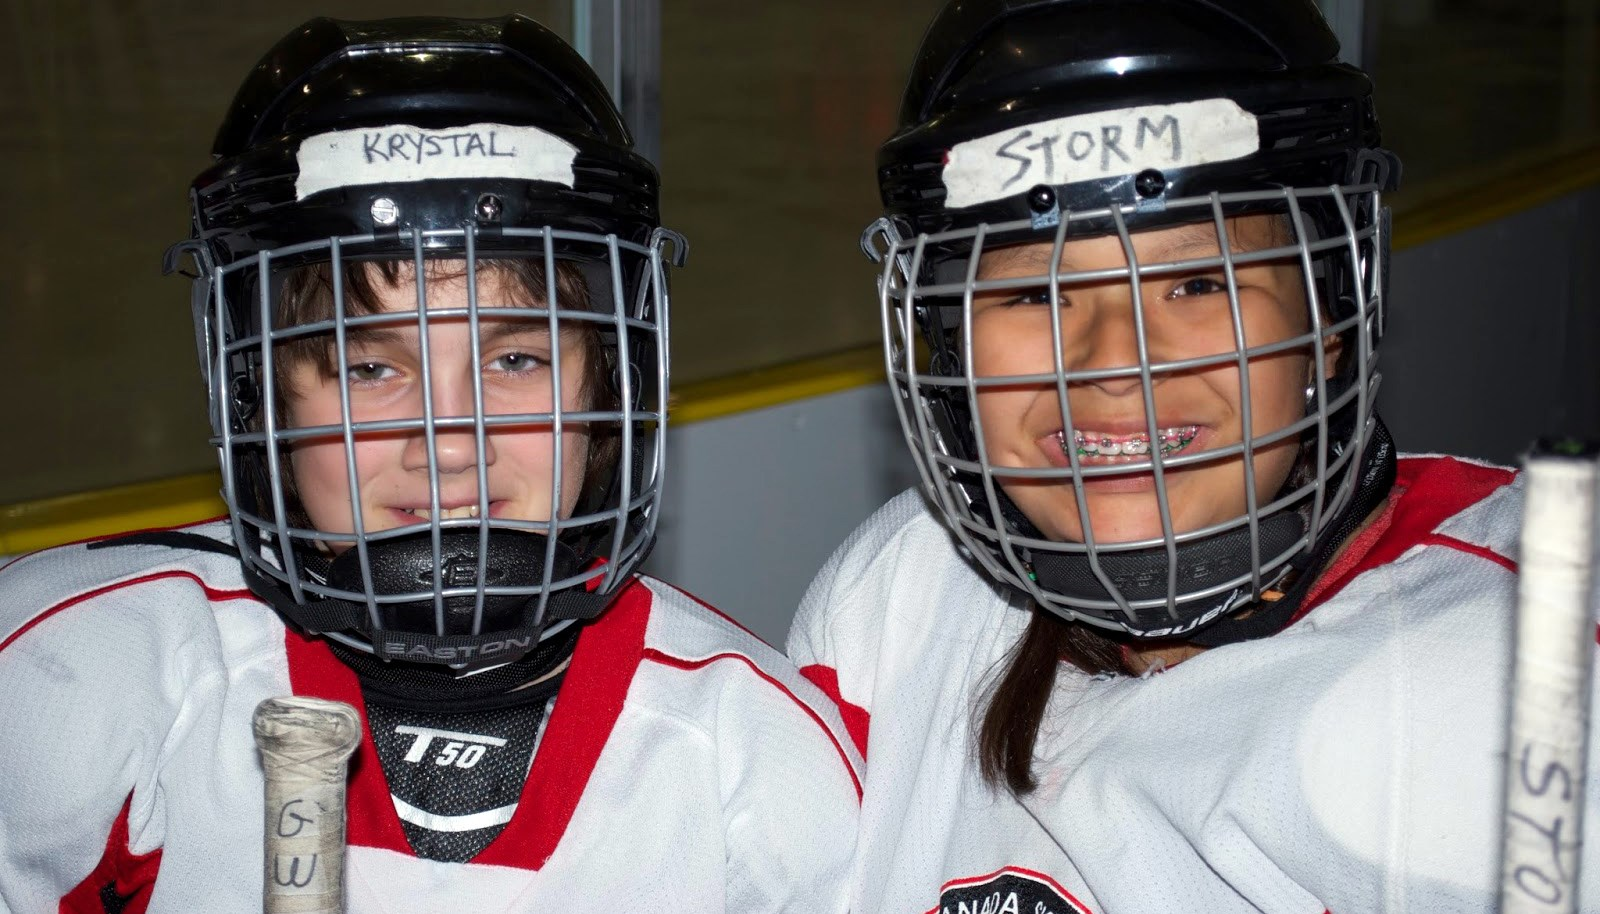 Krystal and Storm Hockey 805x460.jpg